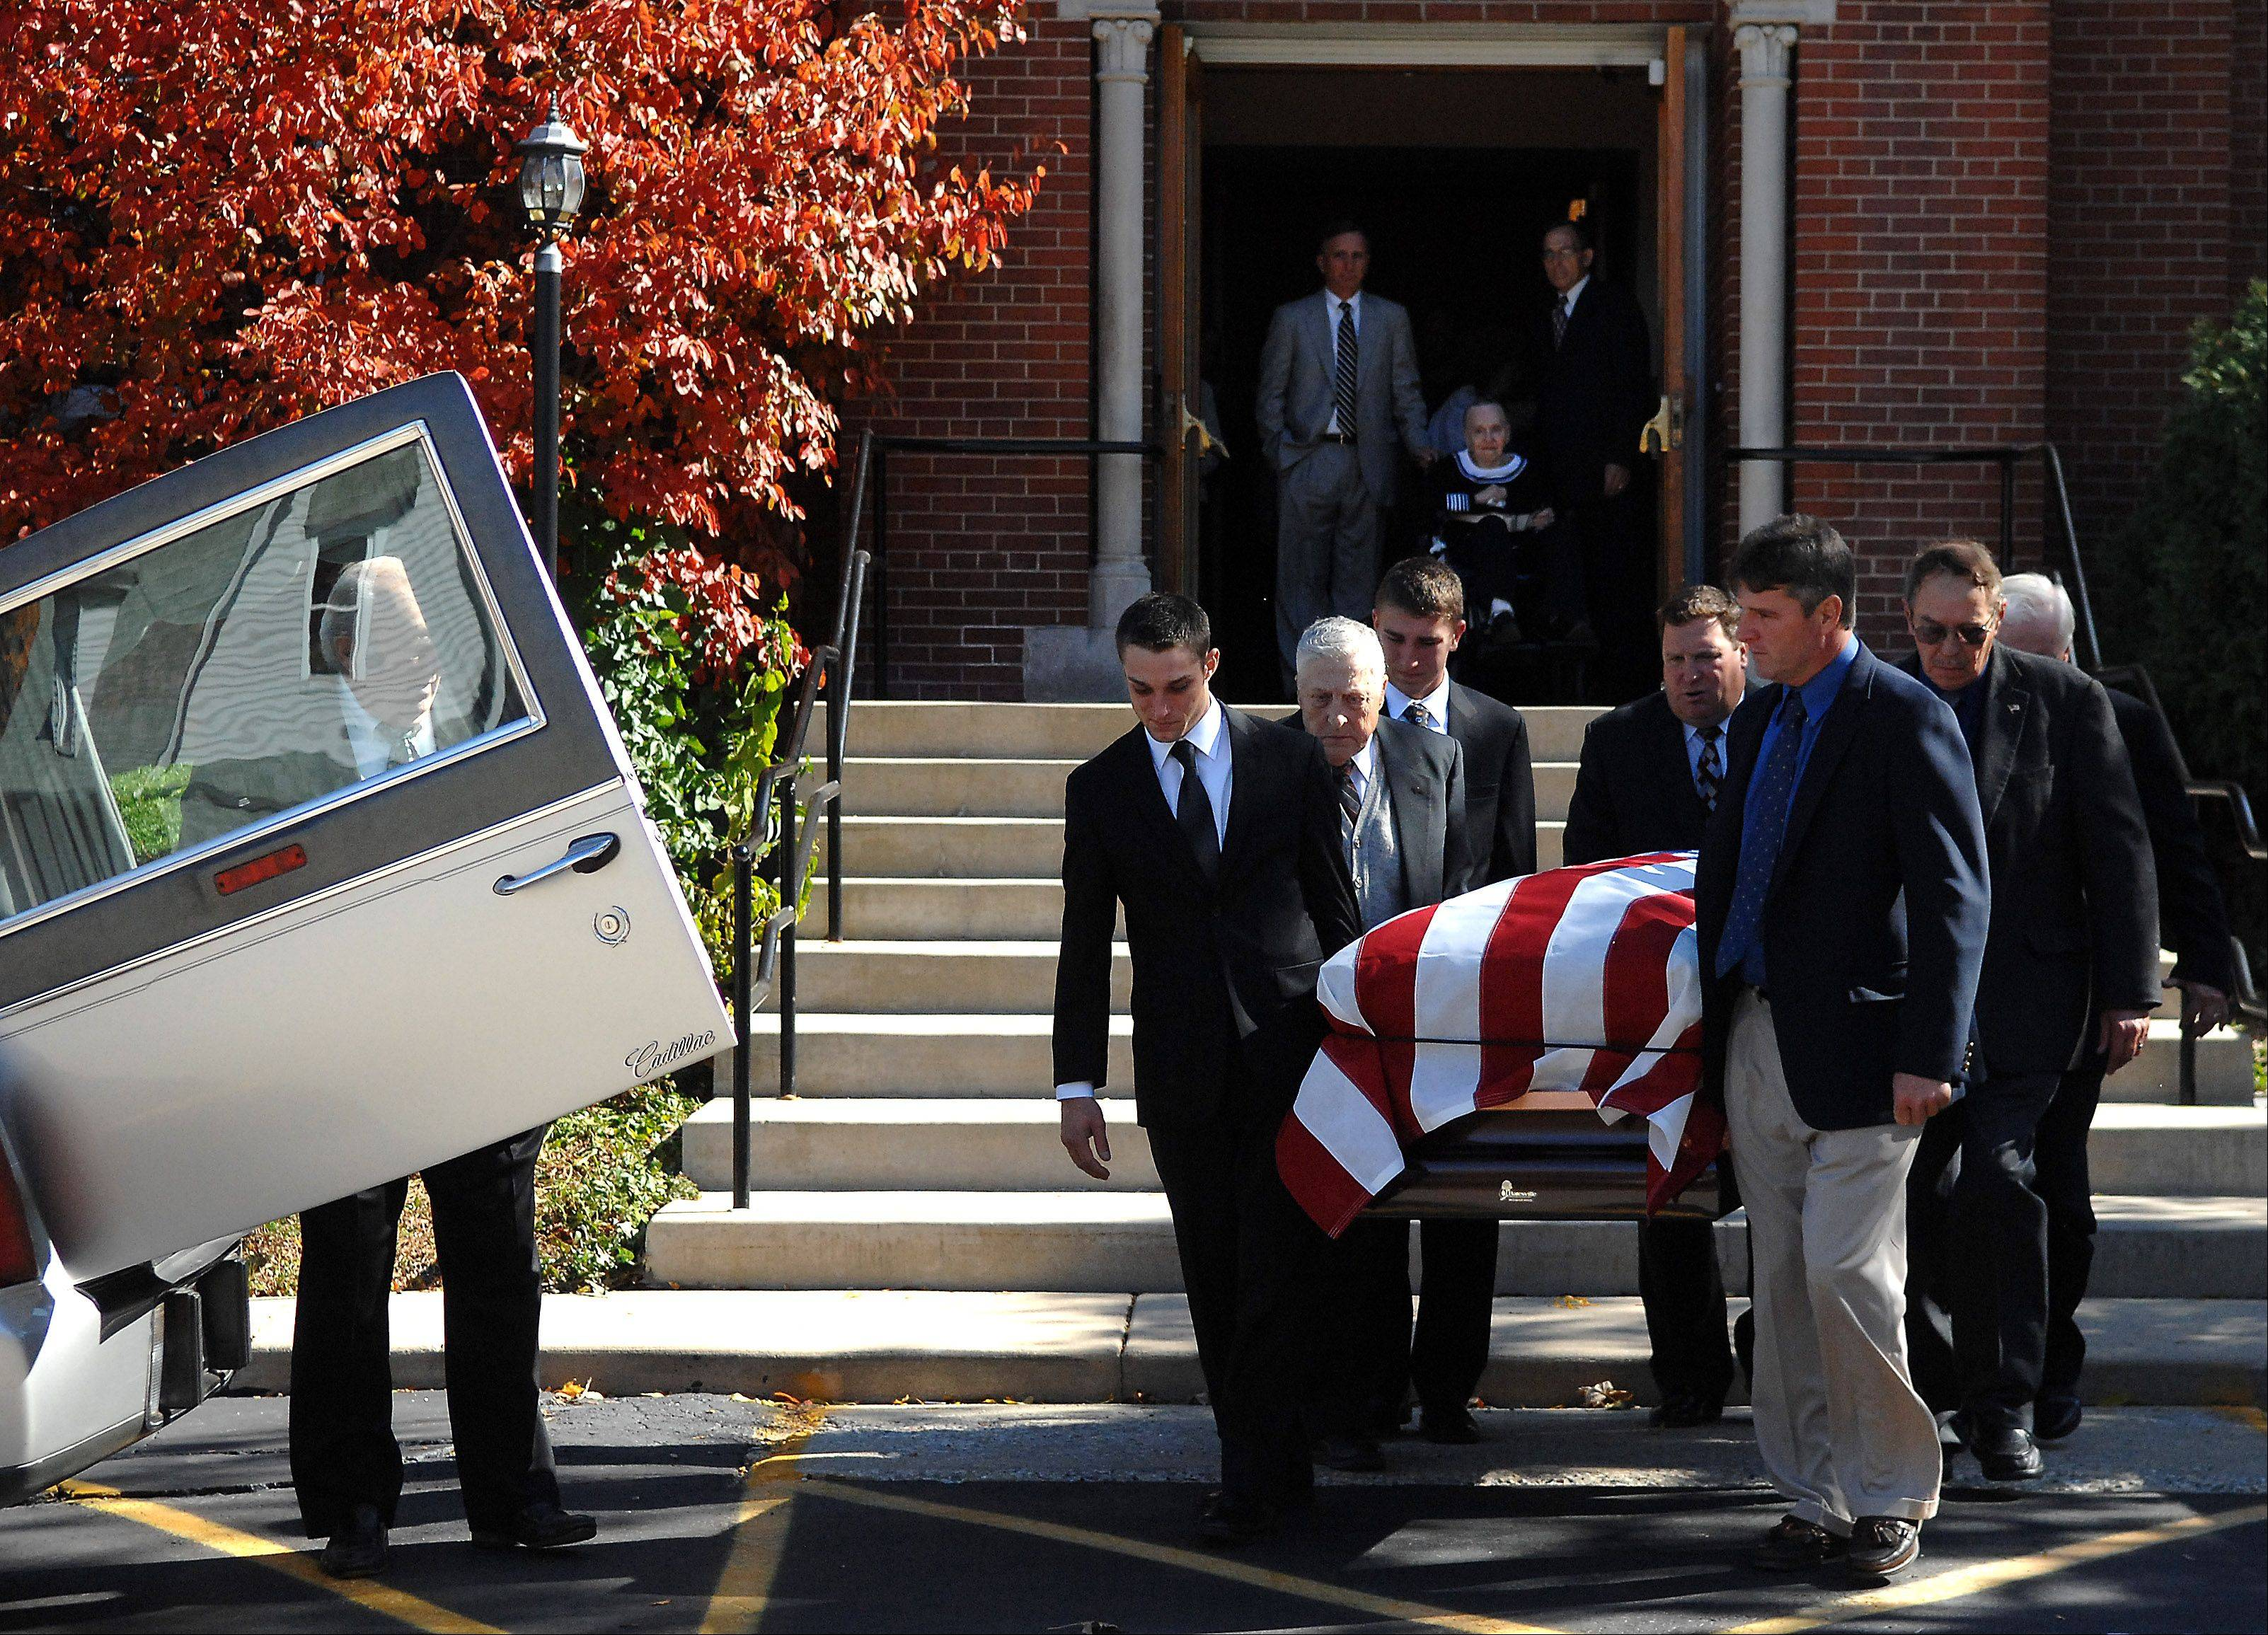 Theresa Kudlicki watches as pallbearers carry the casket of her husband, Robert, after a service Monday morning at St. Charles Borromeo Catholic Church in Hampshire. Besides his service to his community, he was in the Marines during the Korean War. He was buried with full military honors.